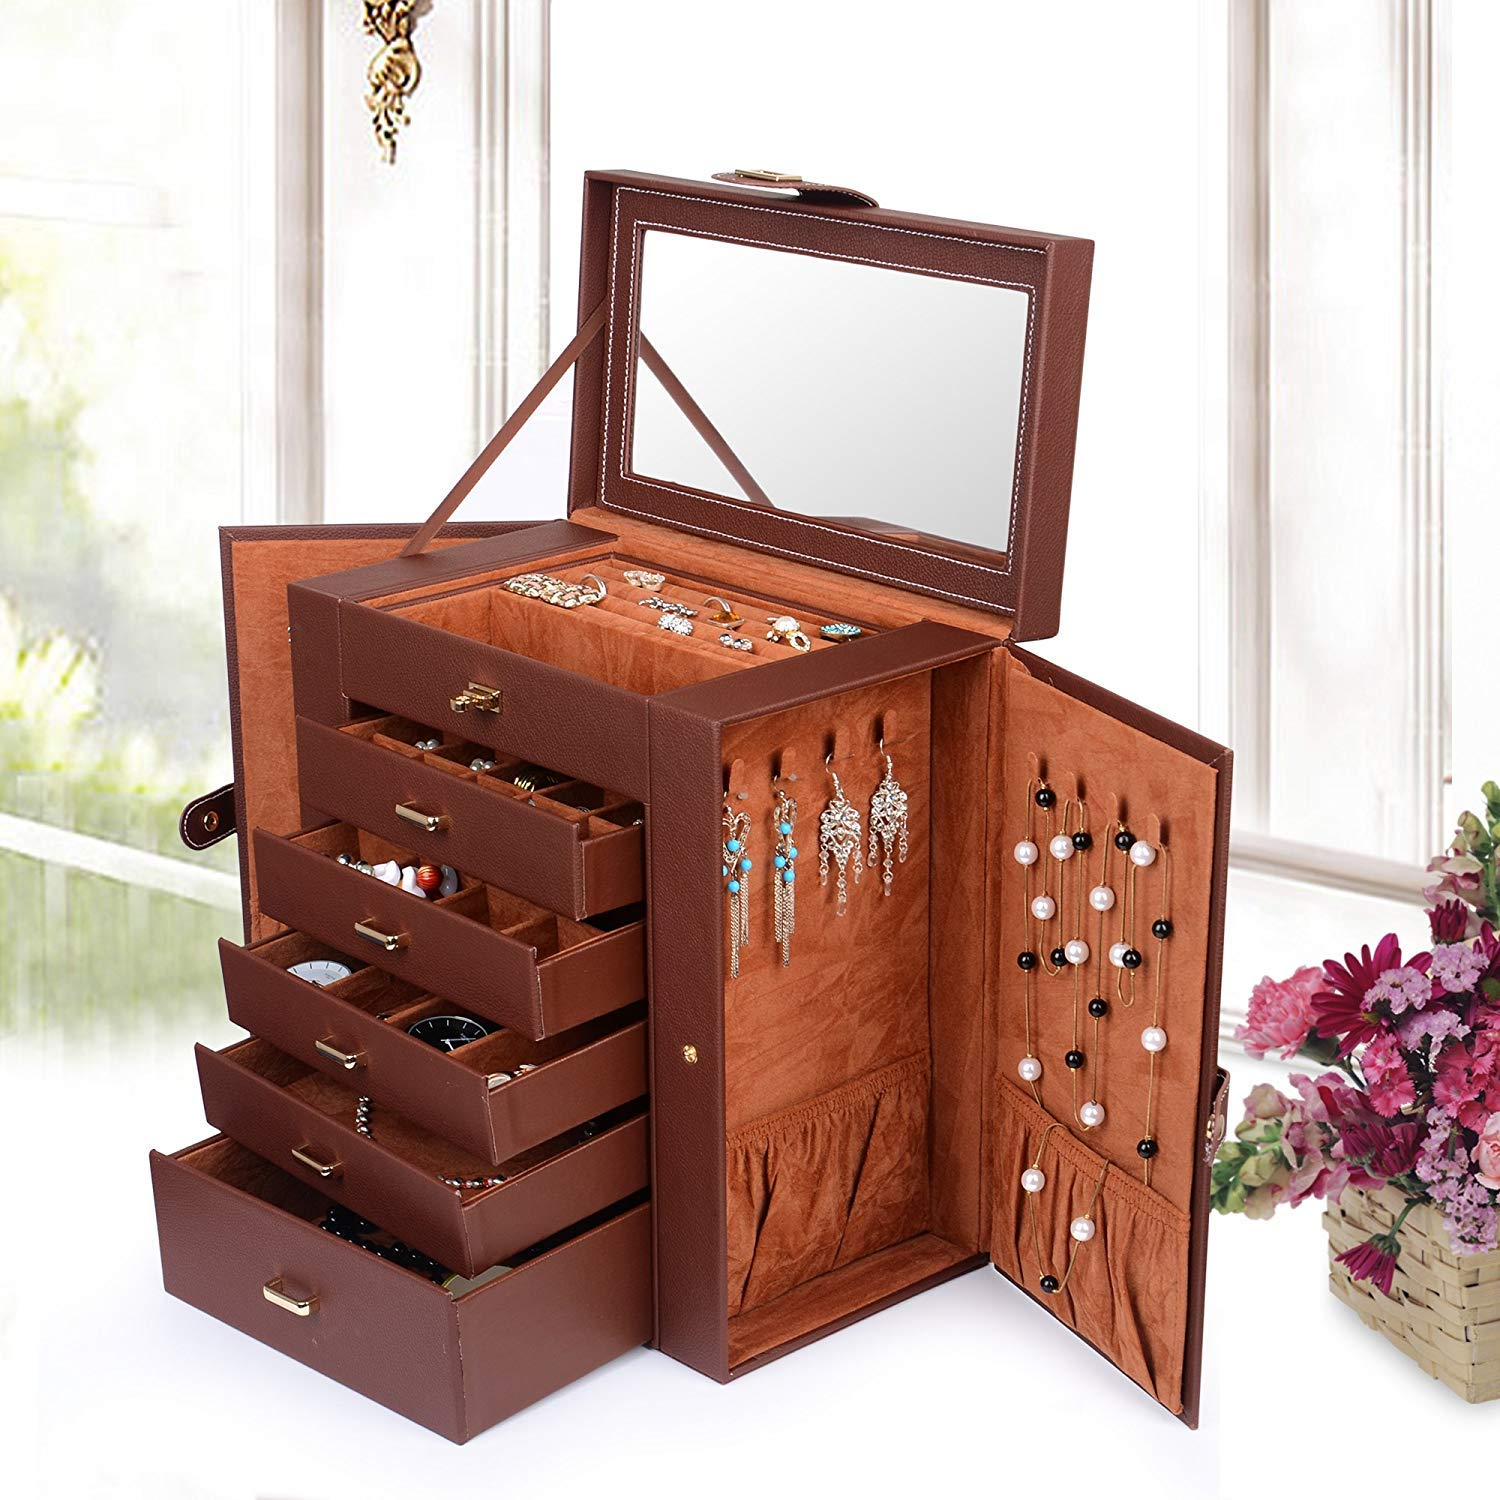 SSLine Deluxe Leather Large Jewelry Box Portable Travel Case for Watch Sunglasses Necklace Organizer 6-Tier Lockable Mirrored Jewel Storage Cabinet with Drawers - Brown